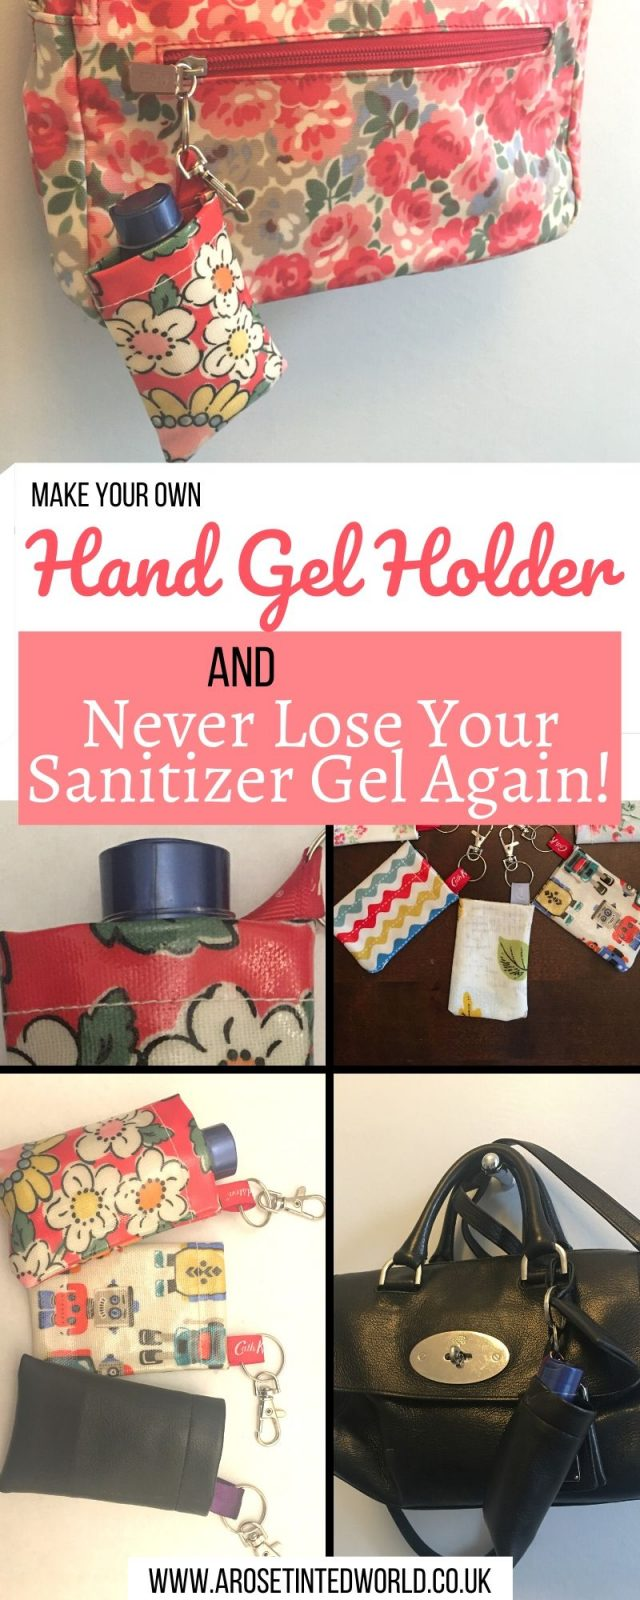 Make A Hand Sanitiser Gel Holder - this hand hygiene gel case can made in minutes and clips to your bag. Never lose your sanitizer again! Full DIY tutorial Great gift for friends, family and teachers. #handgelholder #handhygiene #sanitizer #sanitizergel #cleanhands